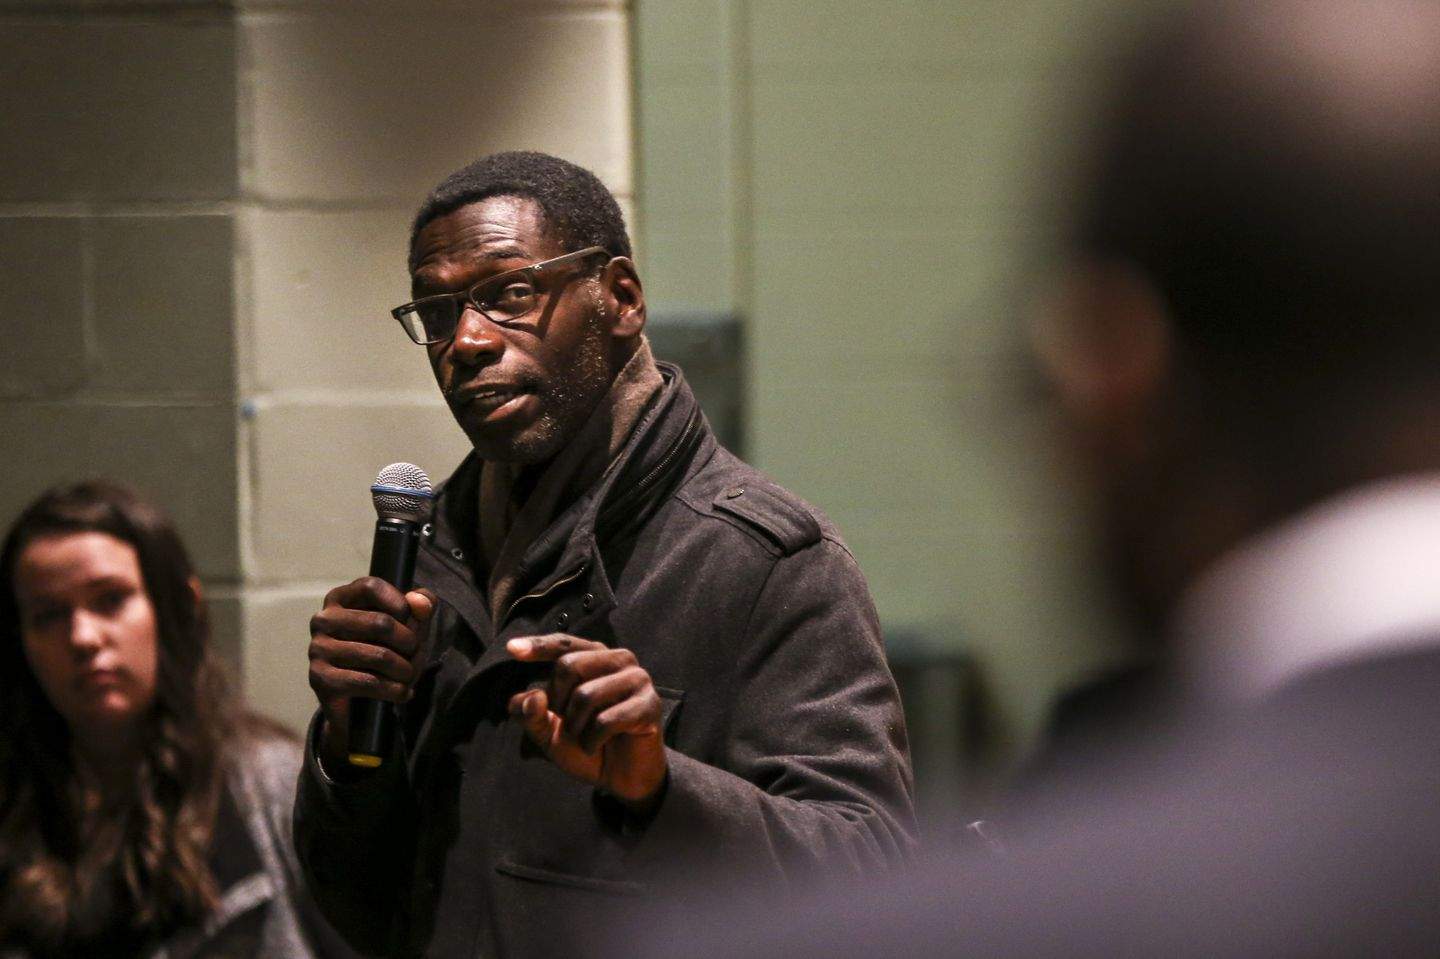 Chauncy Spencer addressed Tito Jackson at a community meeting about Jackson's proposed pot shop in Mattapan Square.